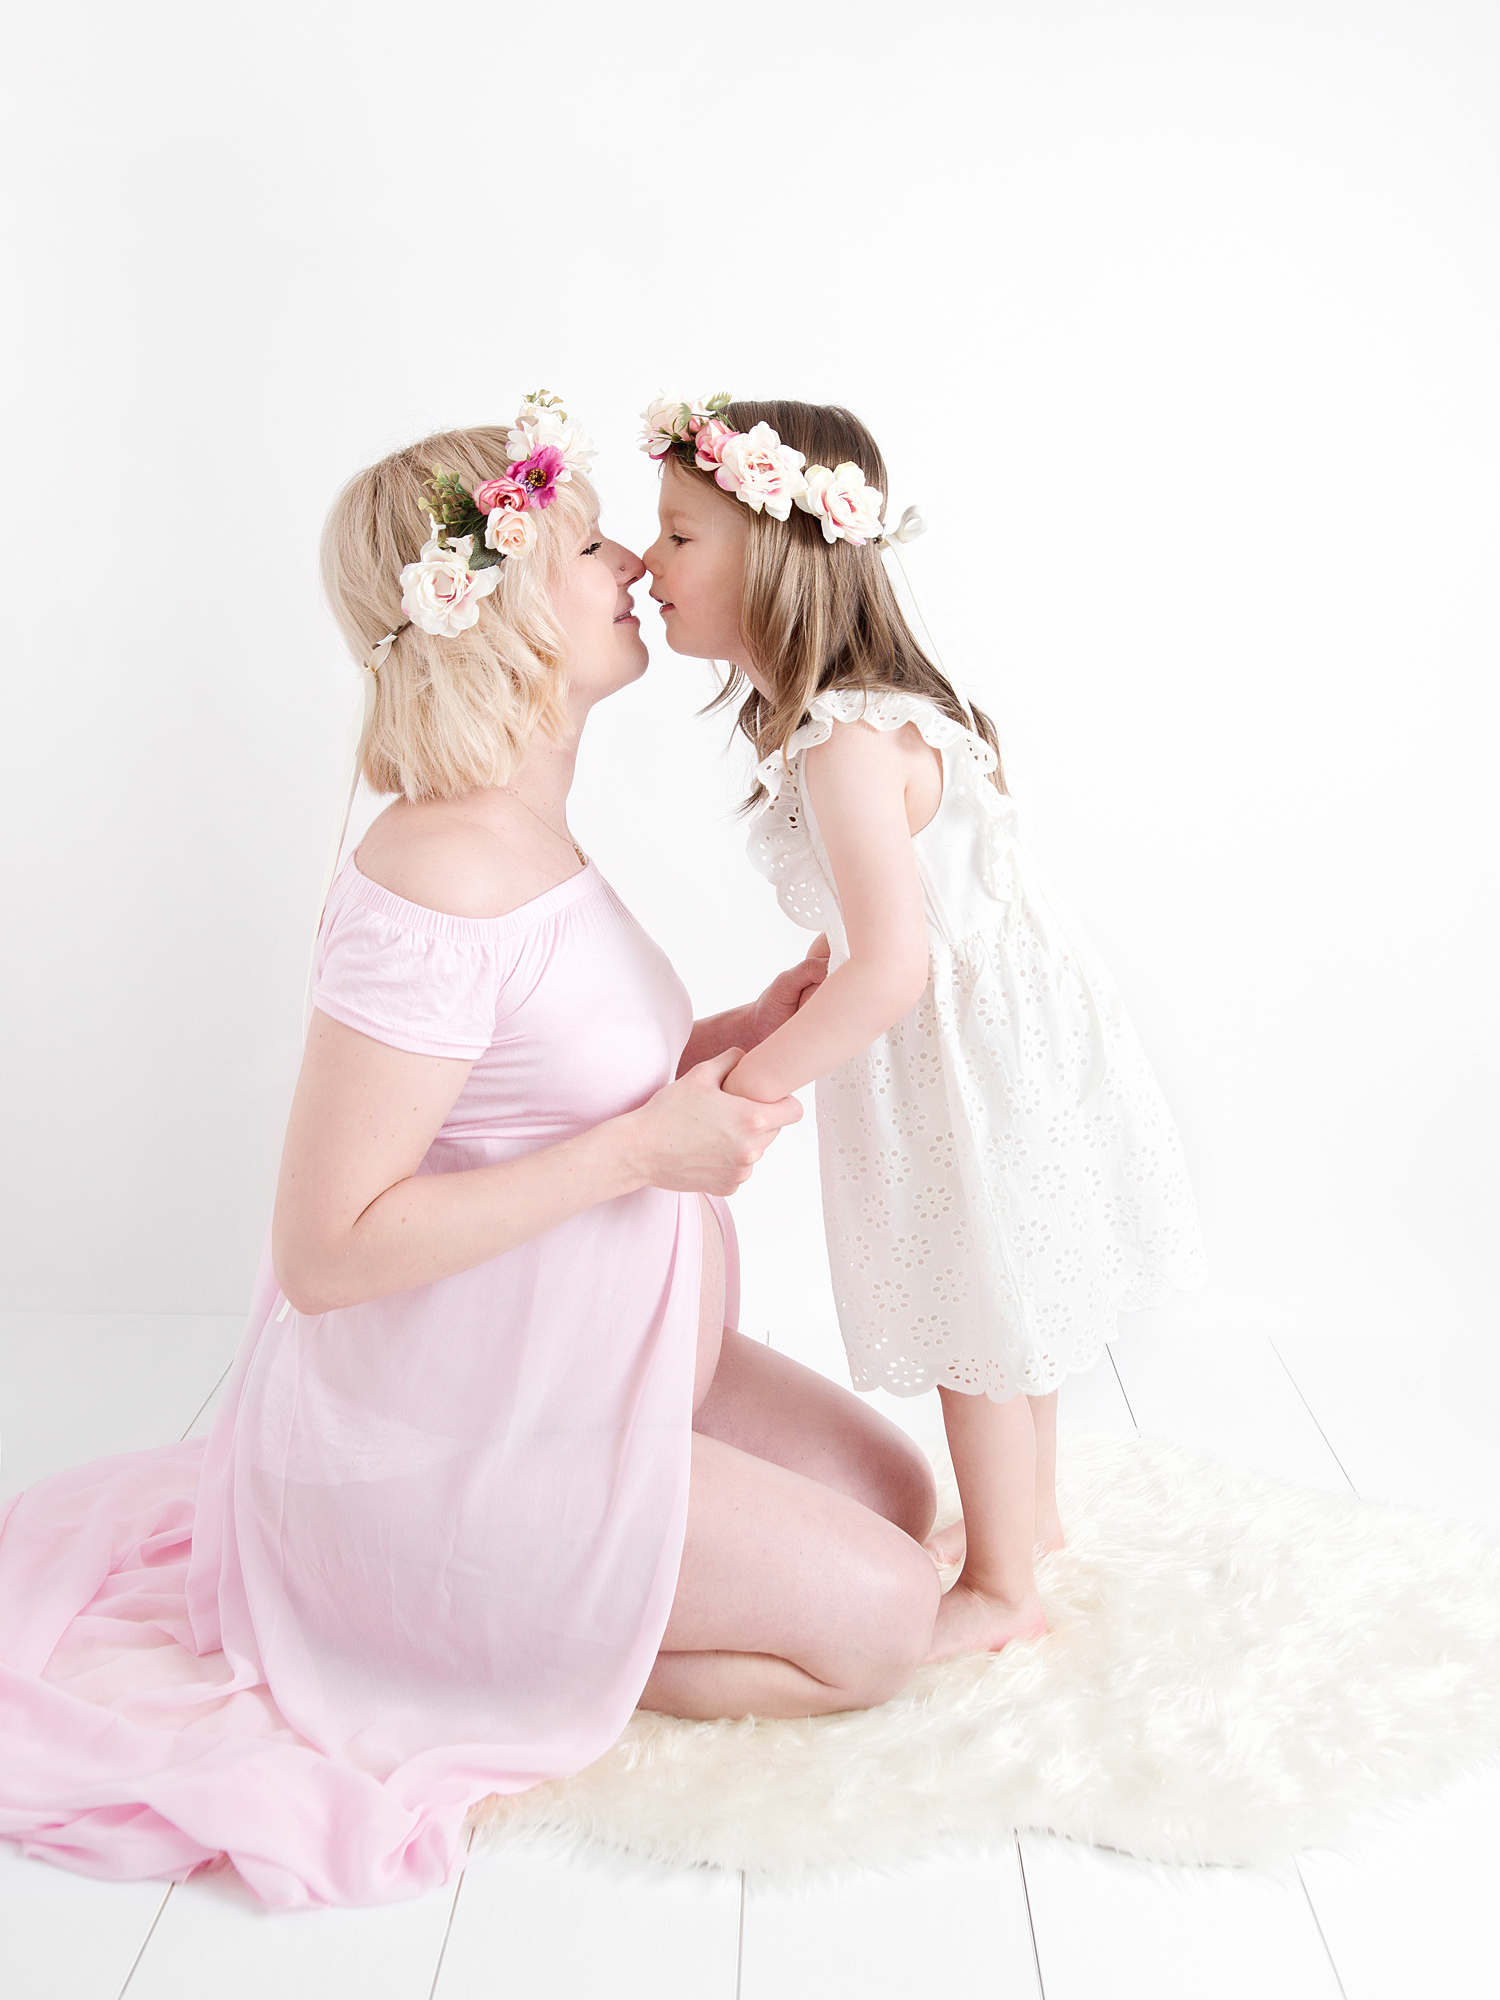 four year old sister with mum studio maternity photography edinburgh midlothian